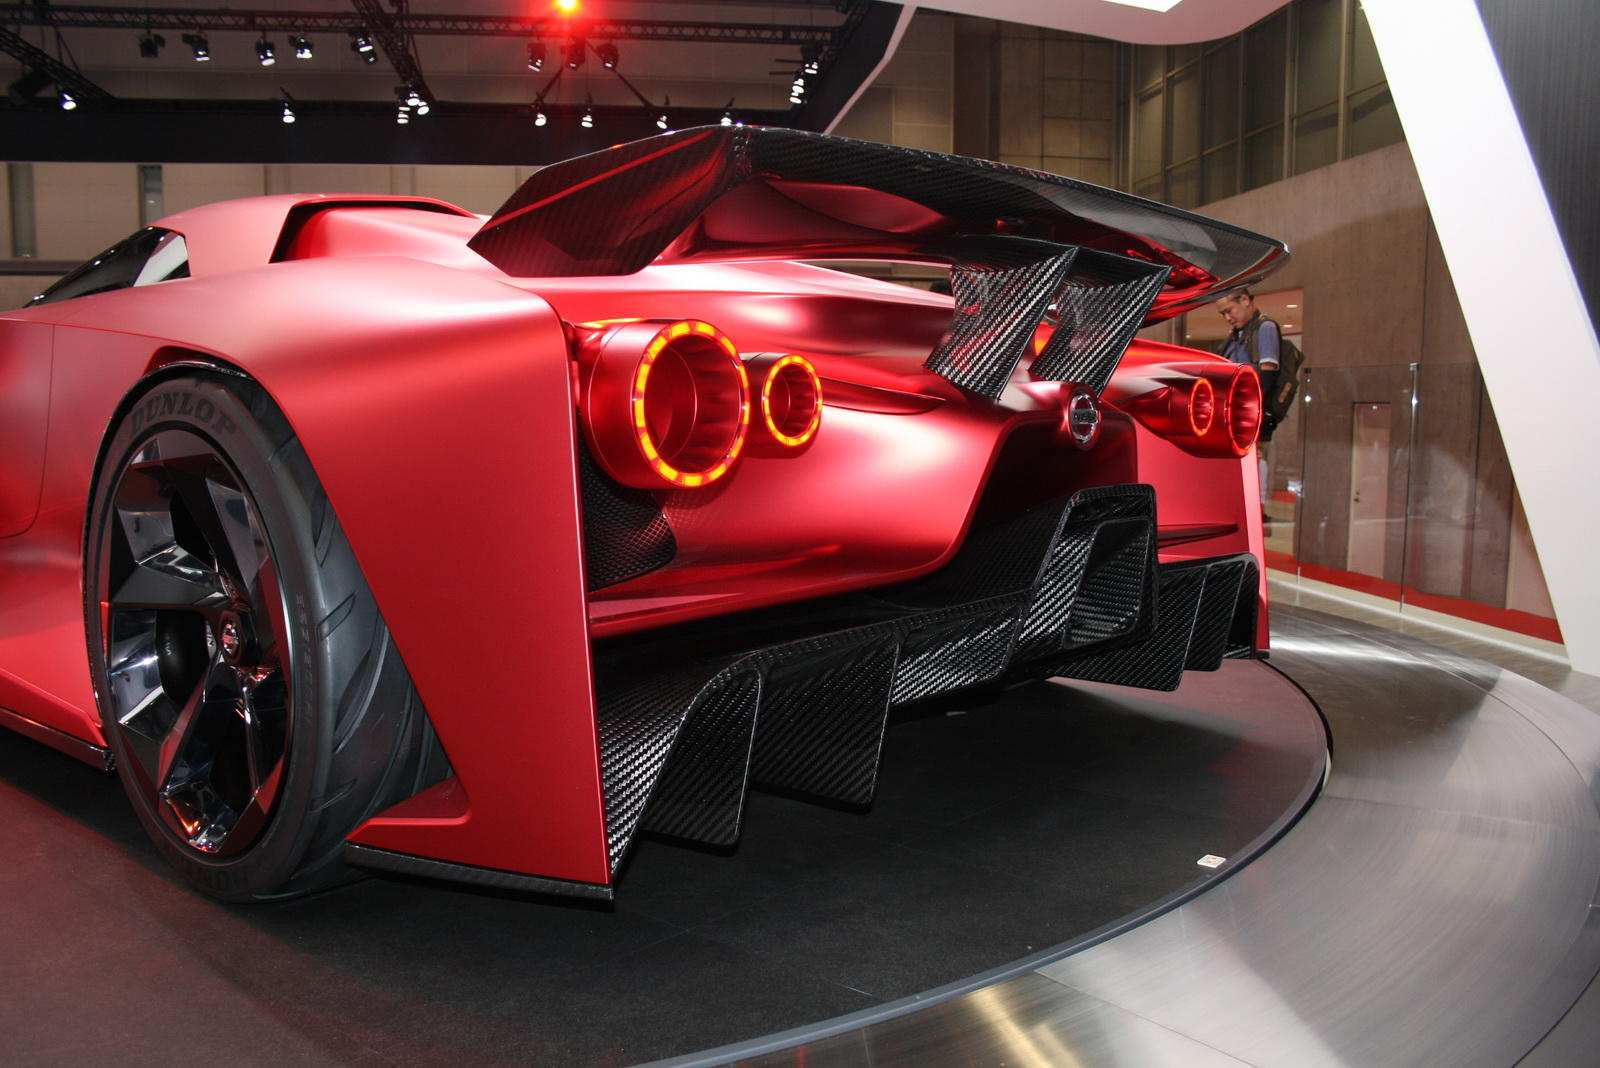 74 Gallery of Nissan Gtr R36 Concept 2020 Release with Nissan Gtr R36 Concept 2020